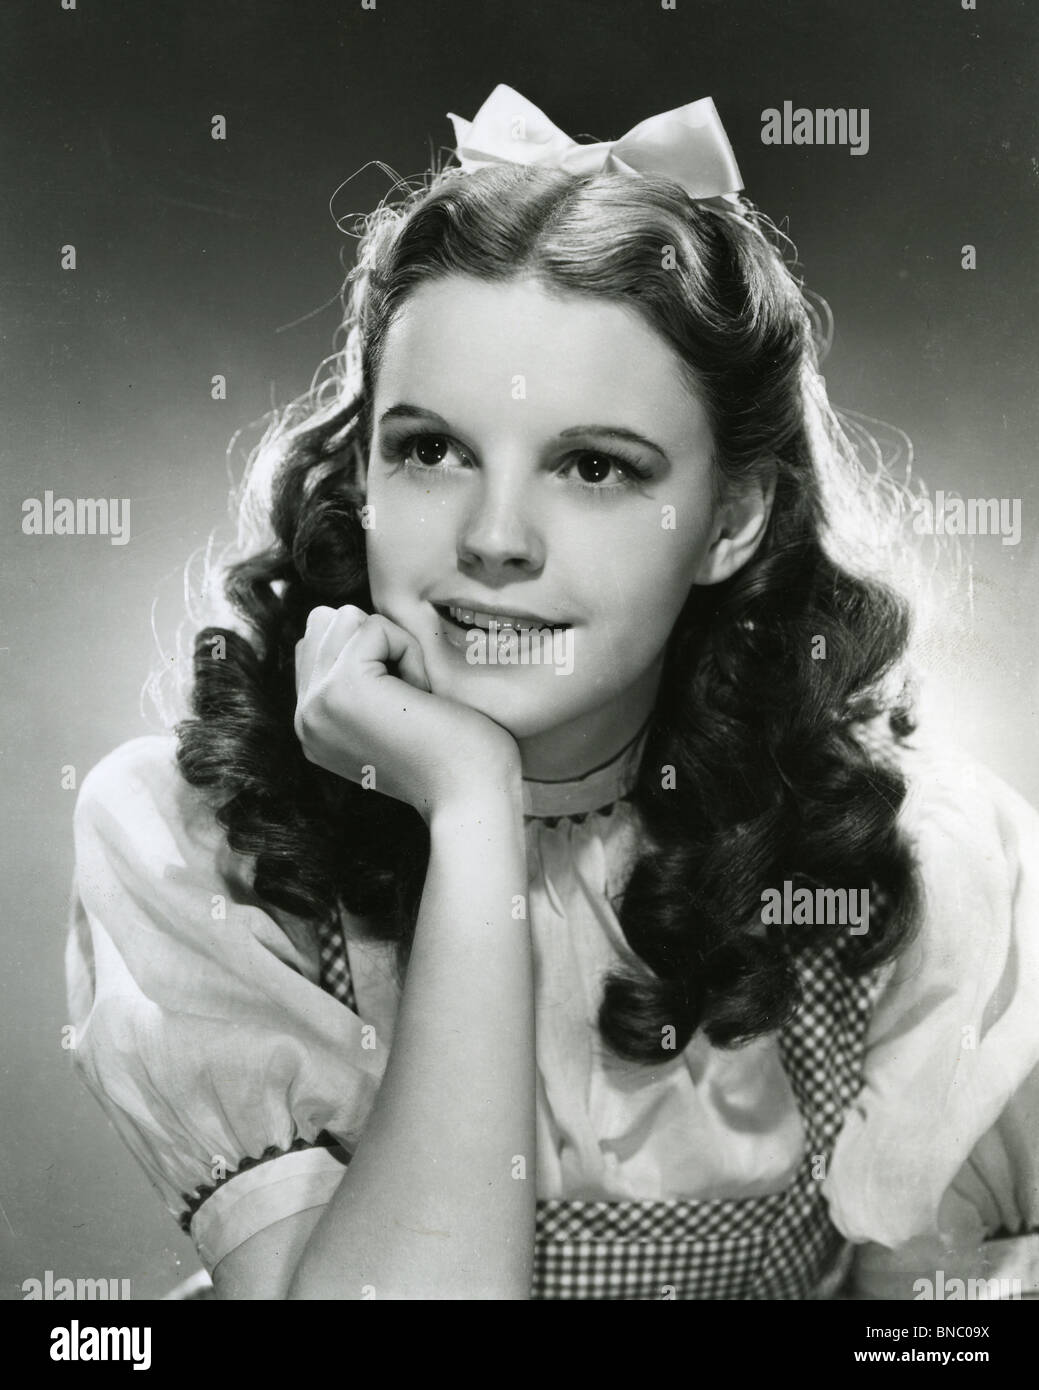 The Wizard Of Oz I939 Mgm Film With Judy Garland As Dorothy Stock Photo Alamy